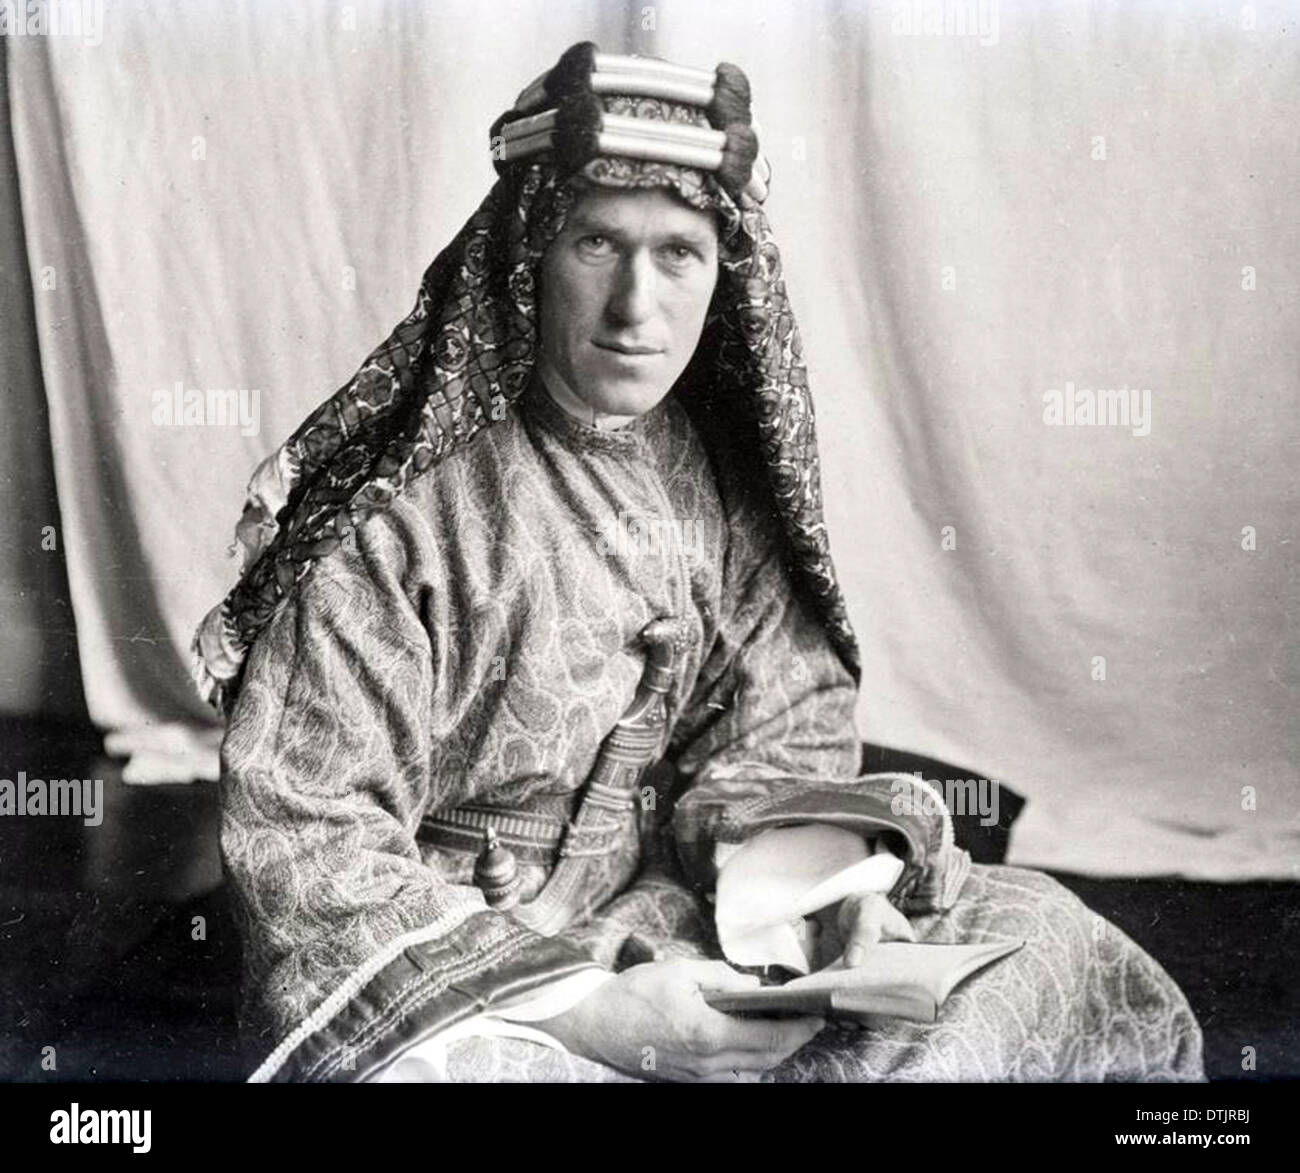 24 x 36 1888-1935 TE Lawrence Nbritish Archaeologist Soldier And Writer Oil Over A Photograph ND Poster Print by